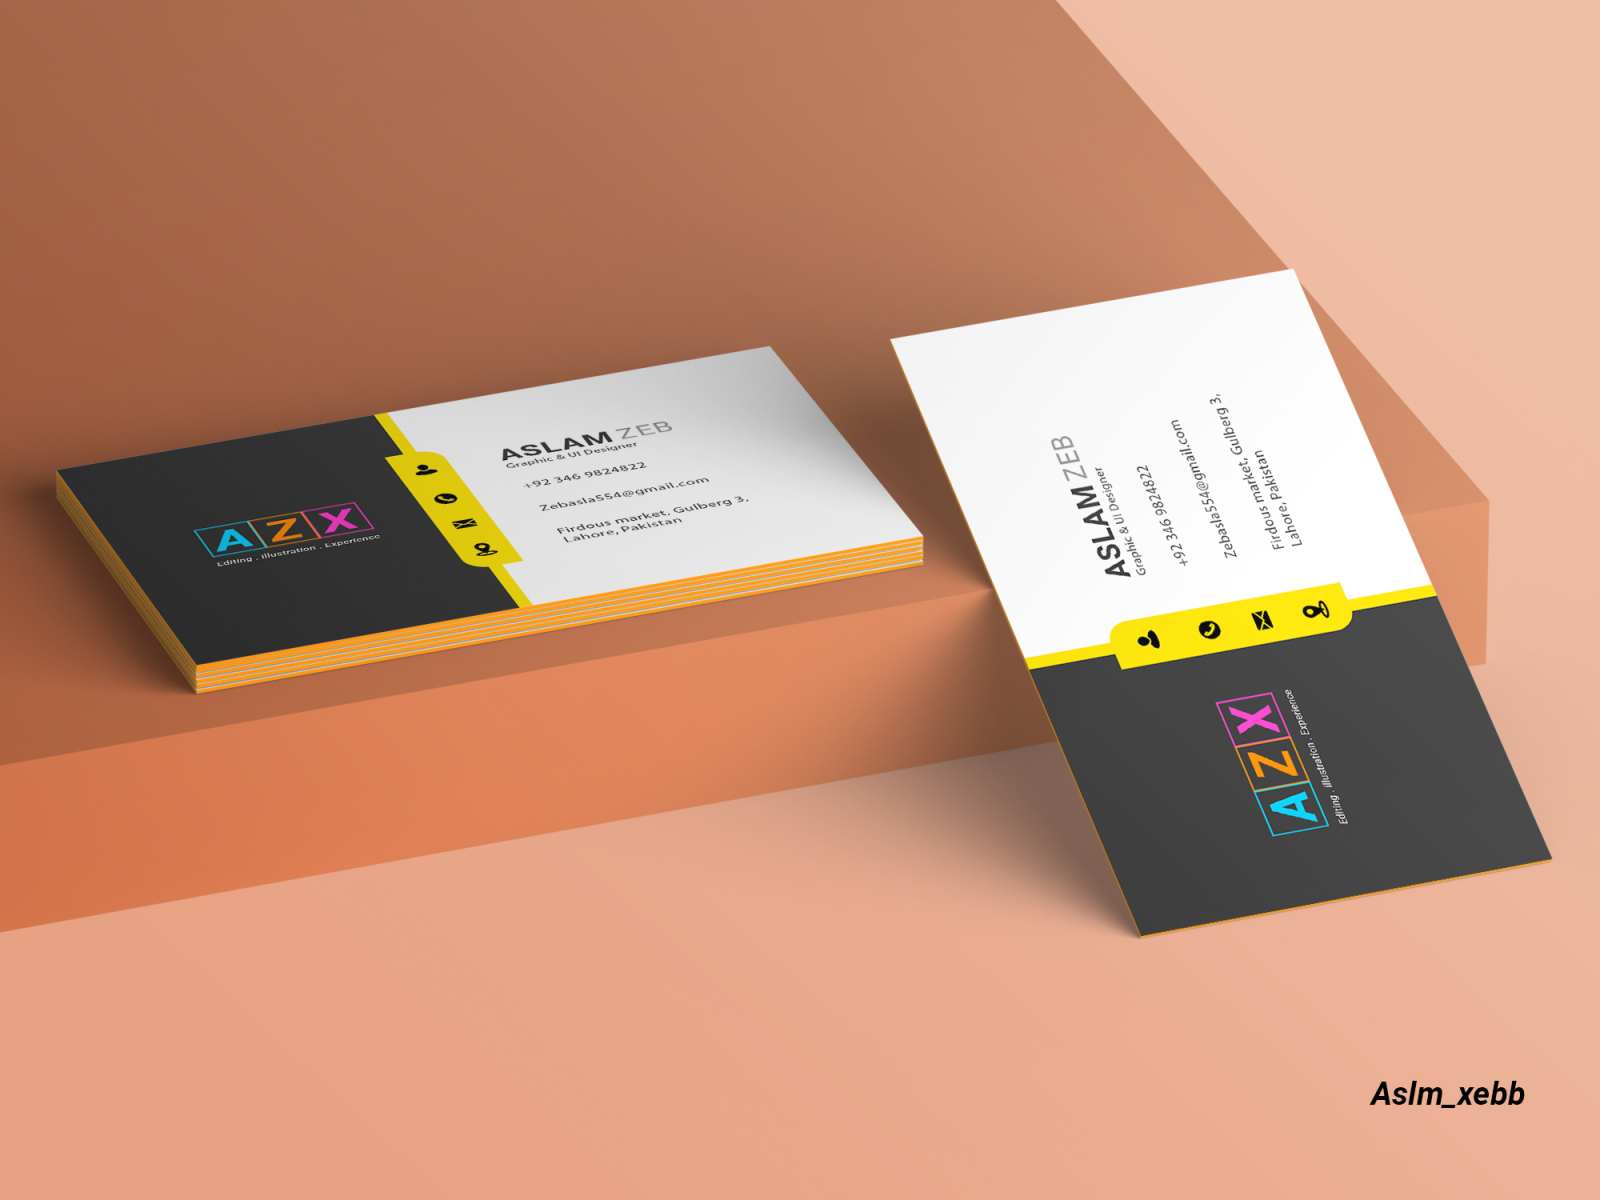 Business Card Graphic Designer By Aslm Xebb On Dribbble,Watercolor Small Simple Owl Tattoo Designs